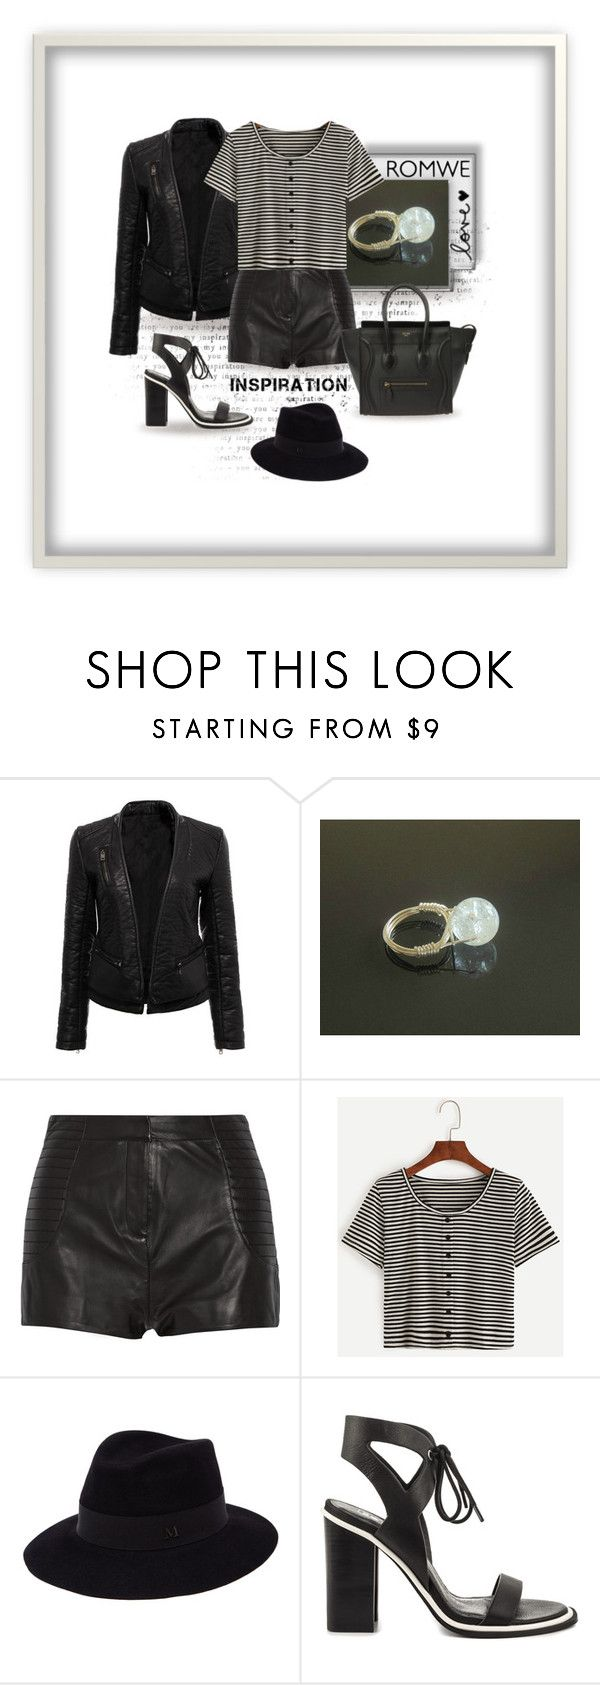 ROMWE by styledonna on Polyvore featuring moda, Pierre Balmain, Sol Sana, Maison Michel, contest and romwe